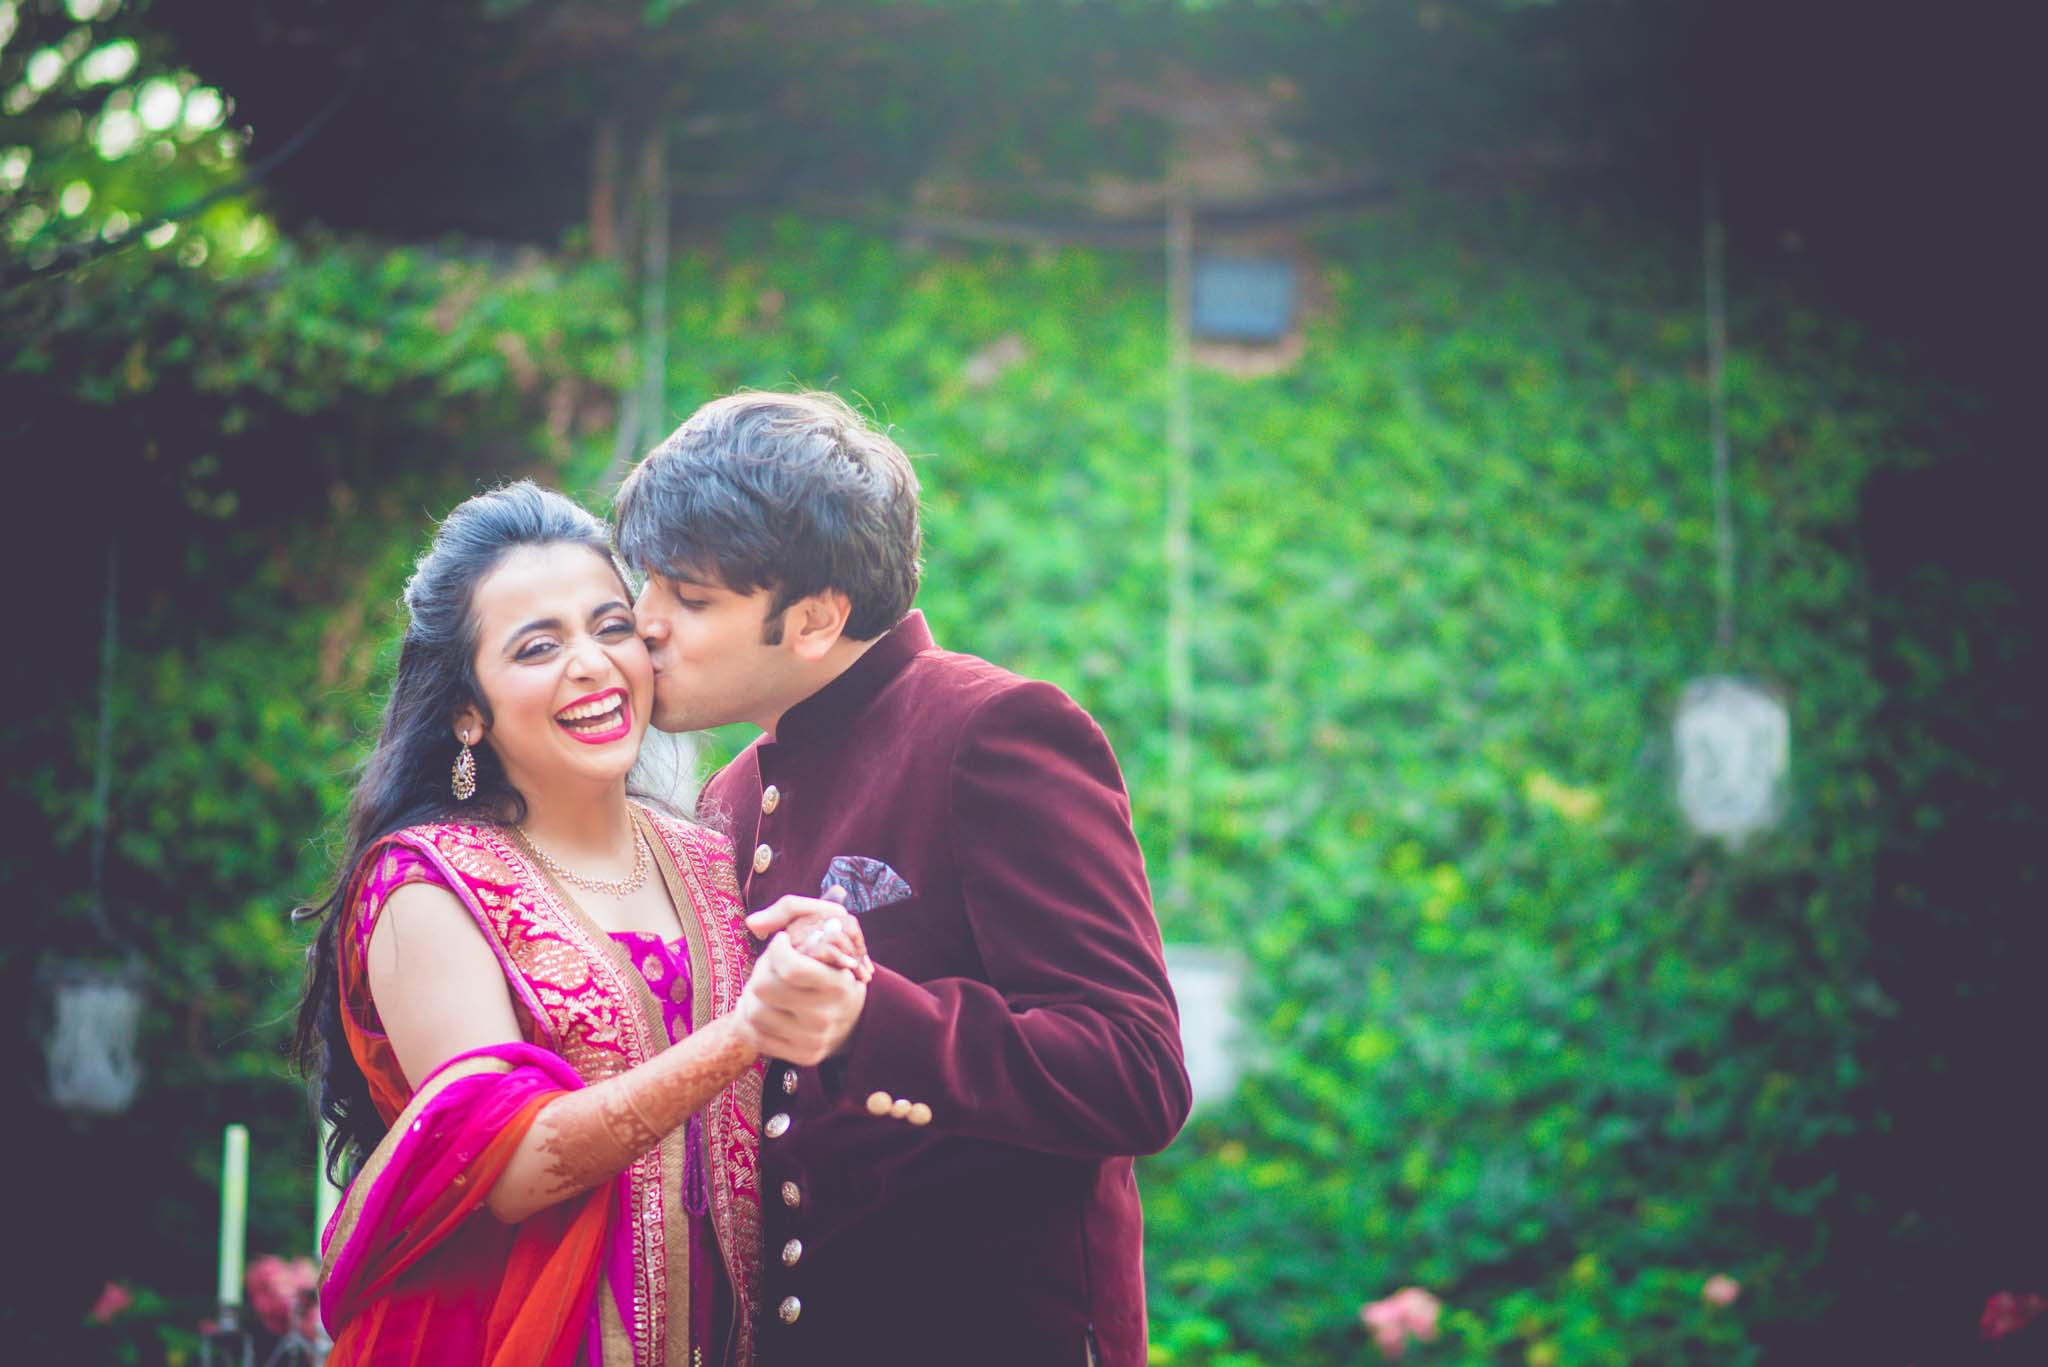 mumbai-candid-photography-wedding-whatknot-kamal-amrohi-studios-6